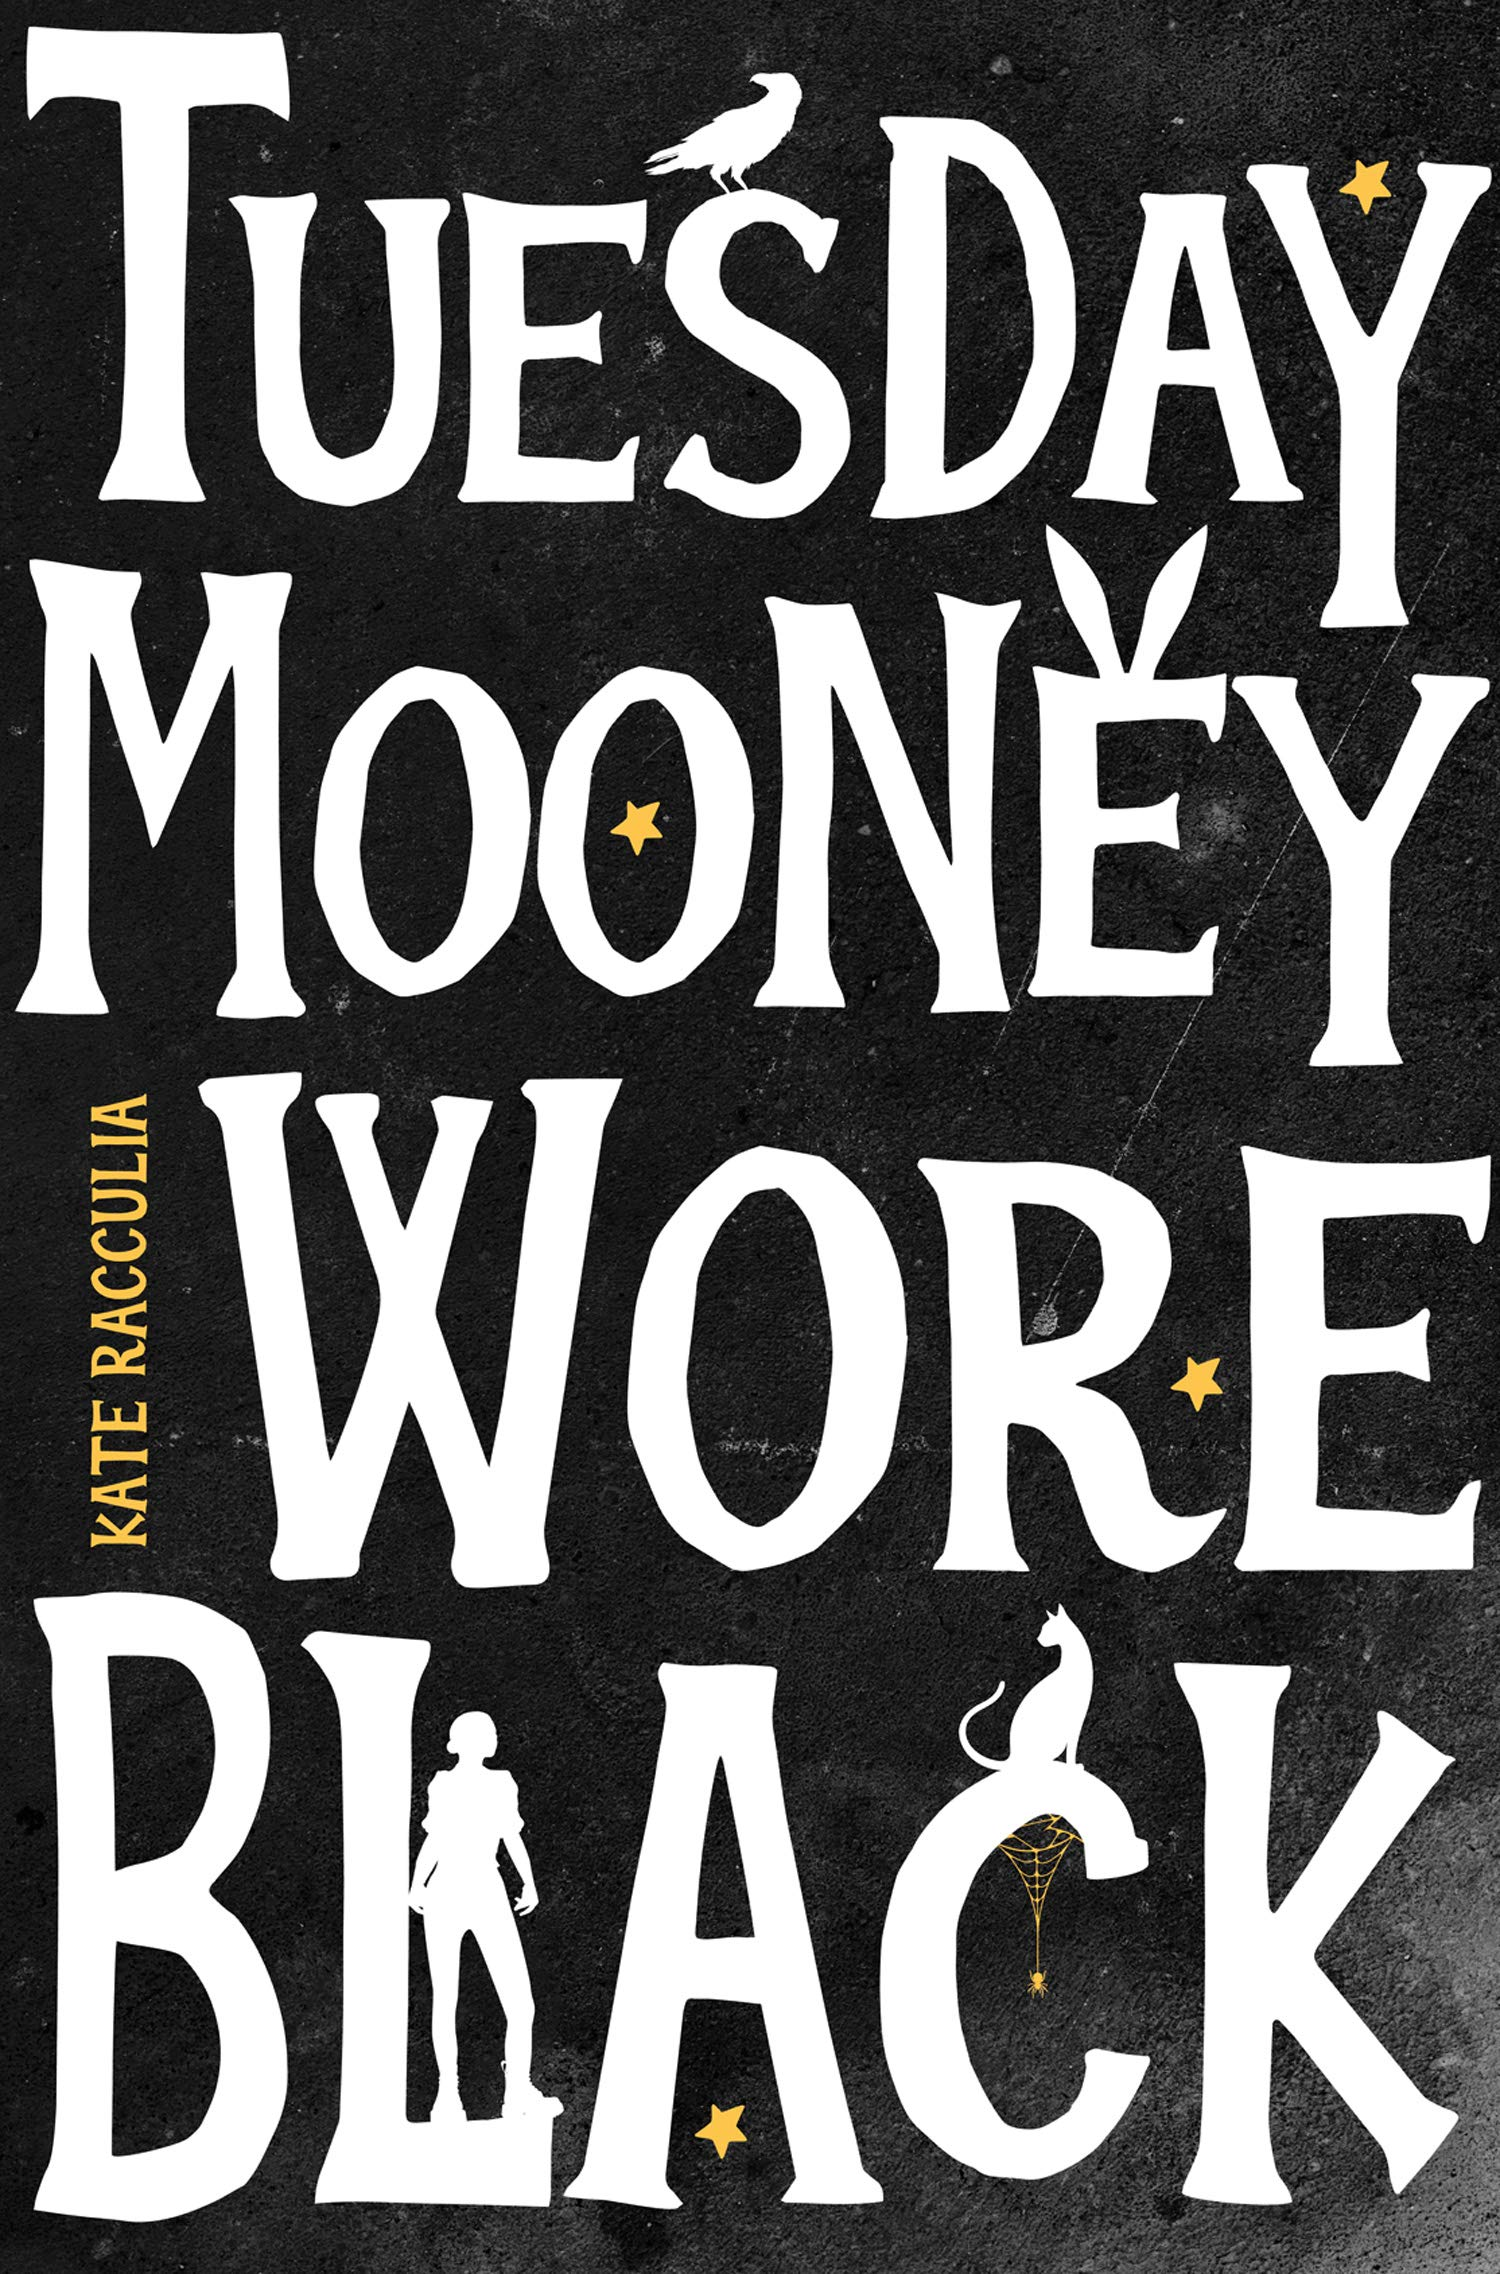 Tuesday Mooney Wore Black: Racculia, Kate: 9780008326951: Amazon ...